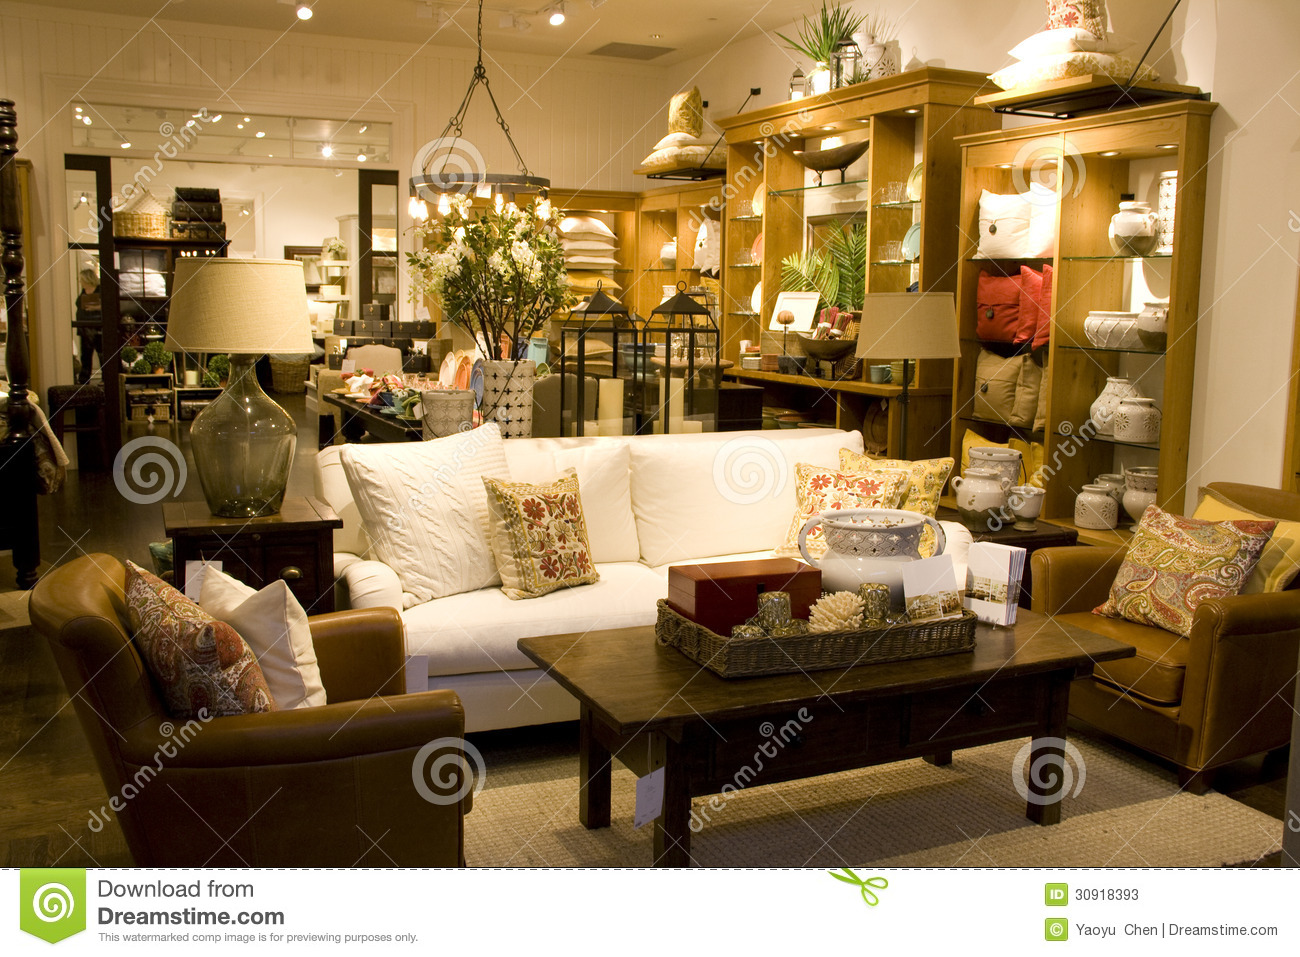 Furniture and home decor store stock image image 30918393 for Home decor furniture stores